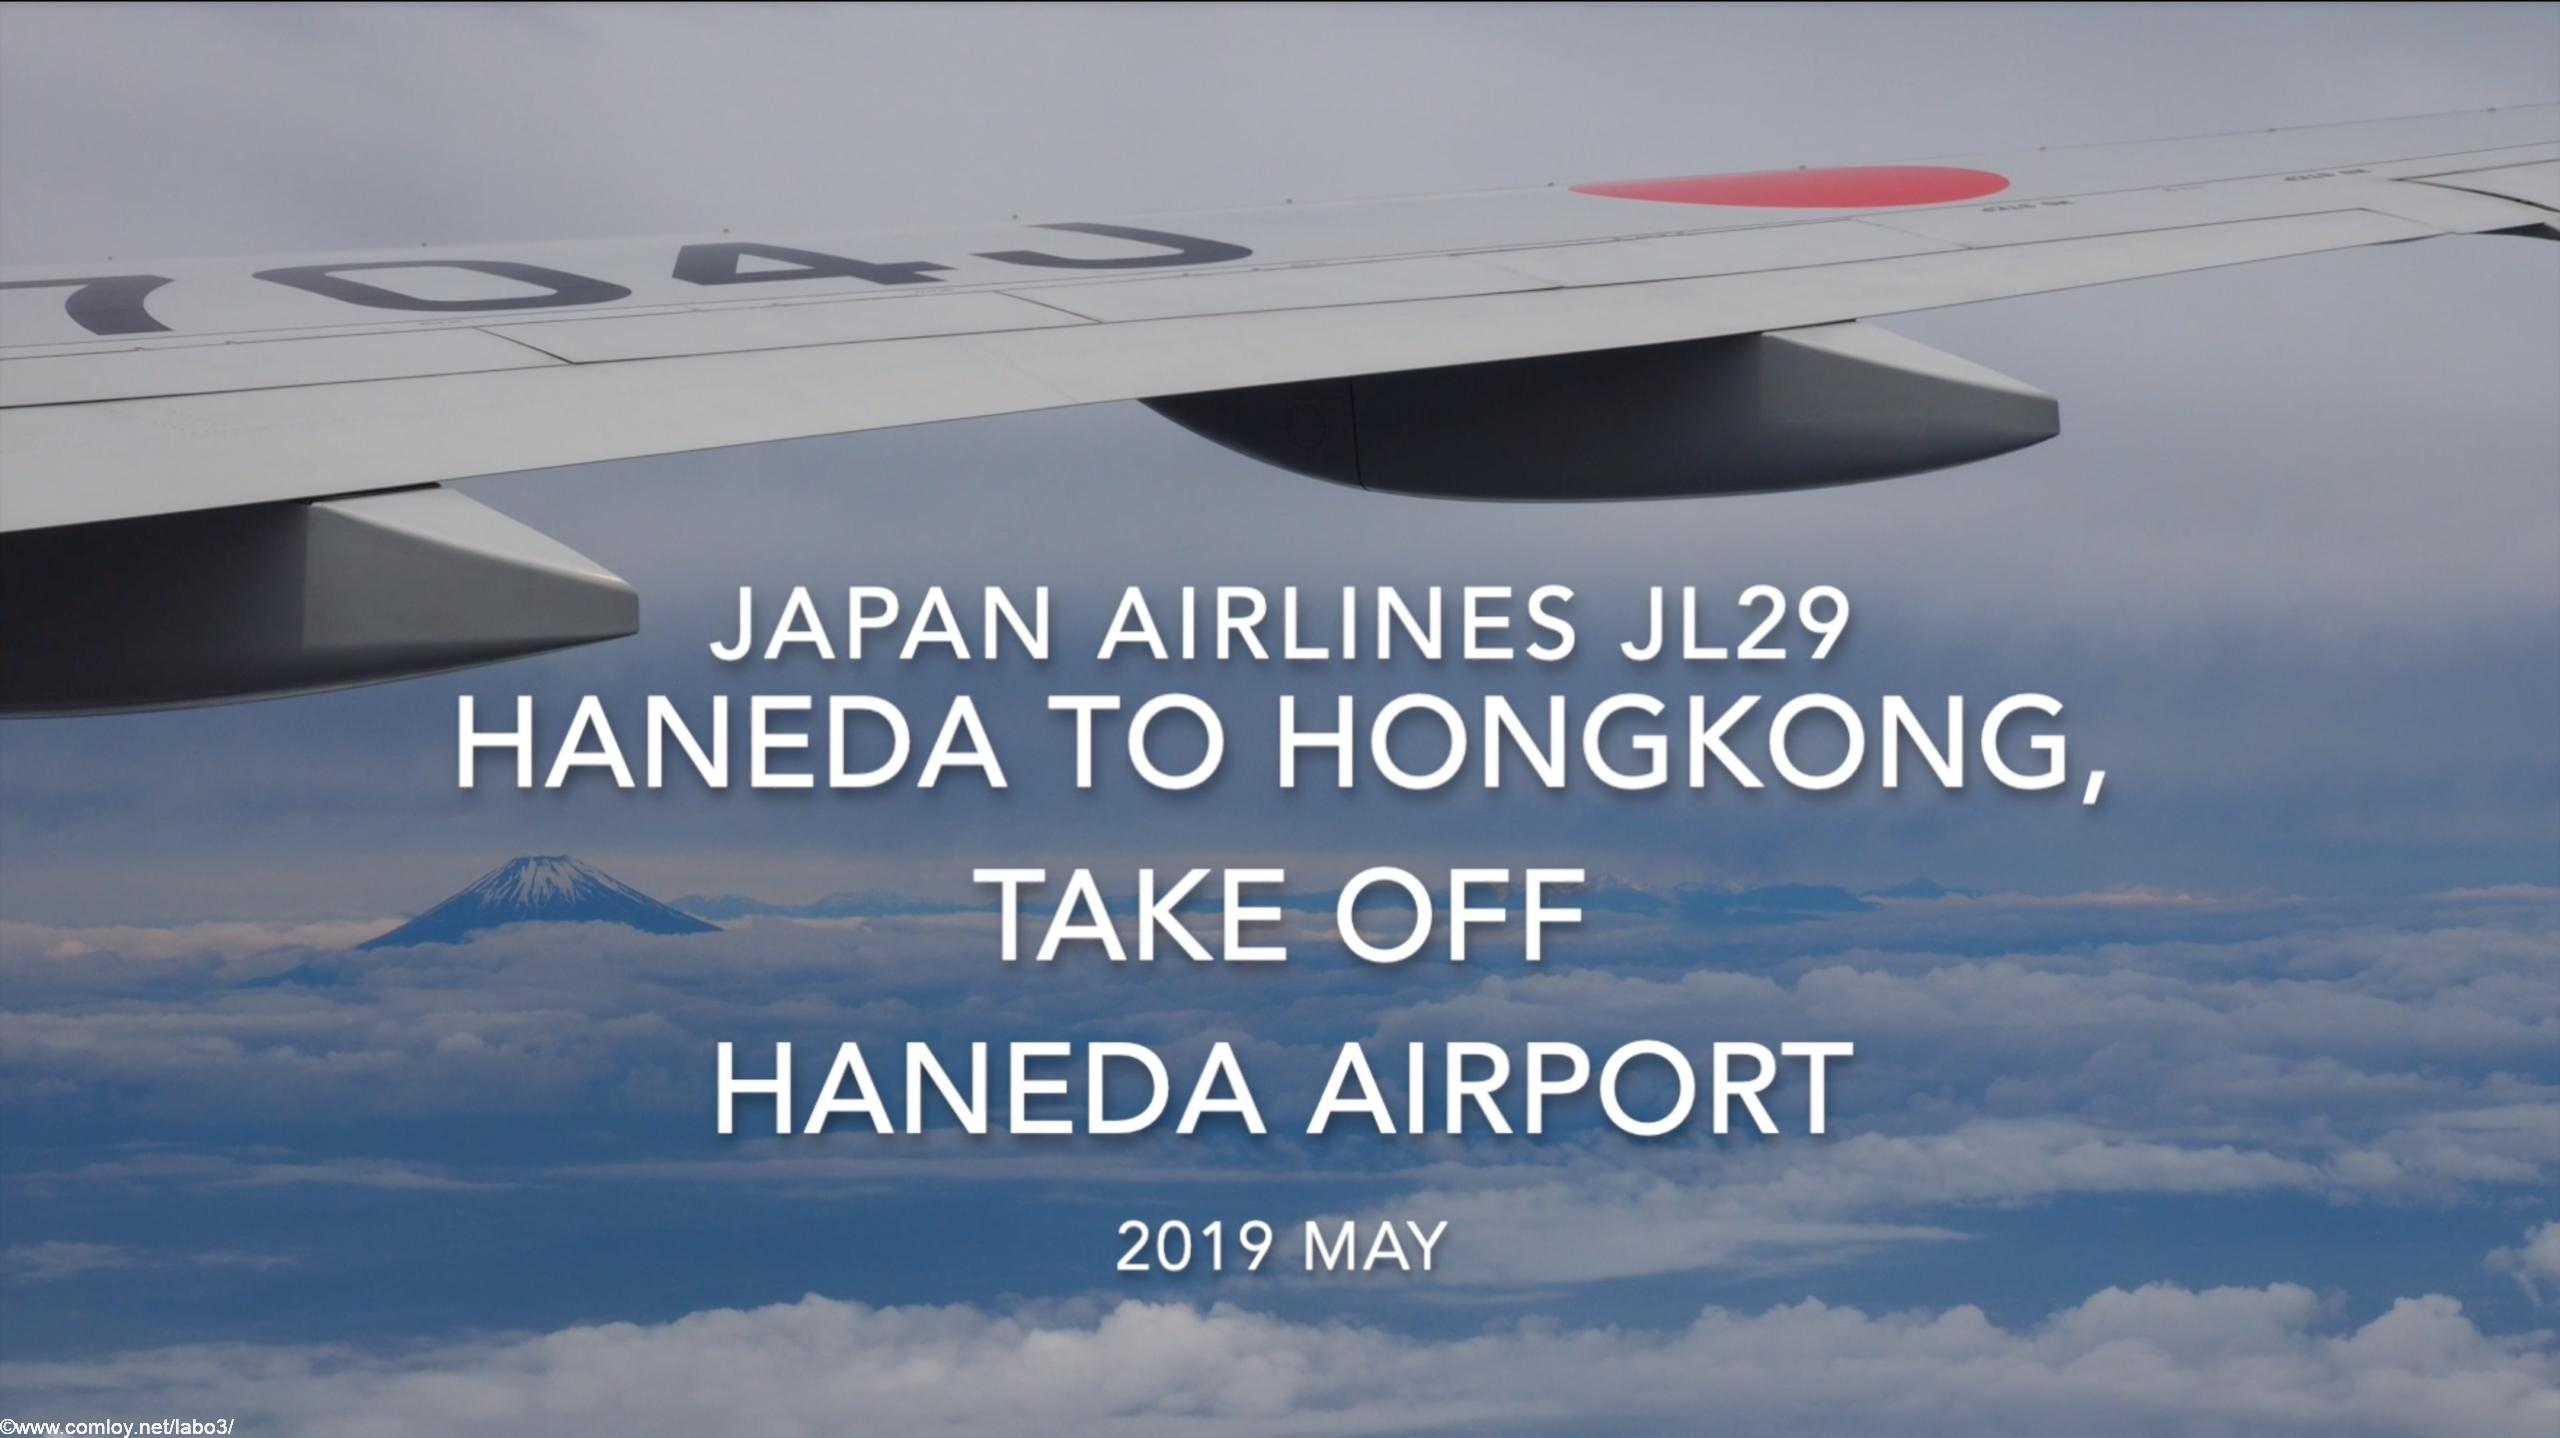 【機内から離着陸映像】2019 May Japan airlines JL29 HANEDA to HONGKONG, Take off HANEDA Airport